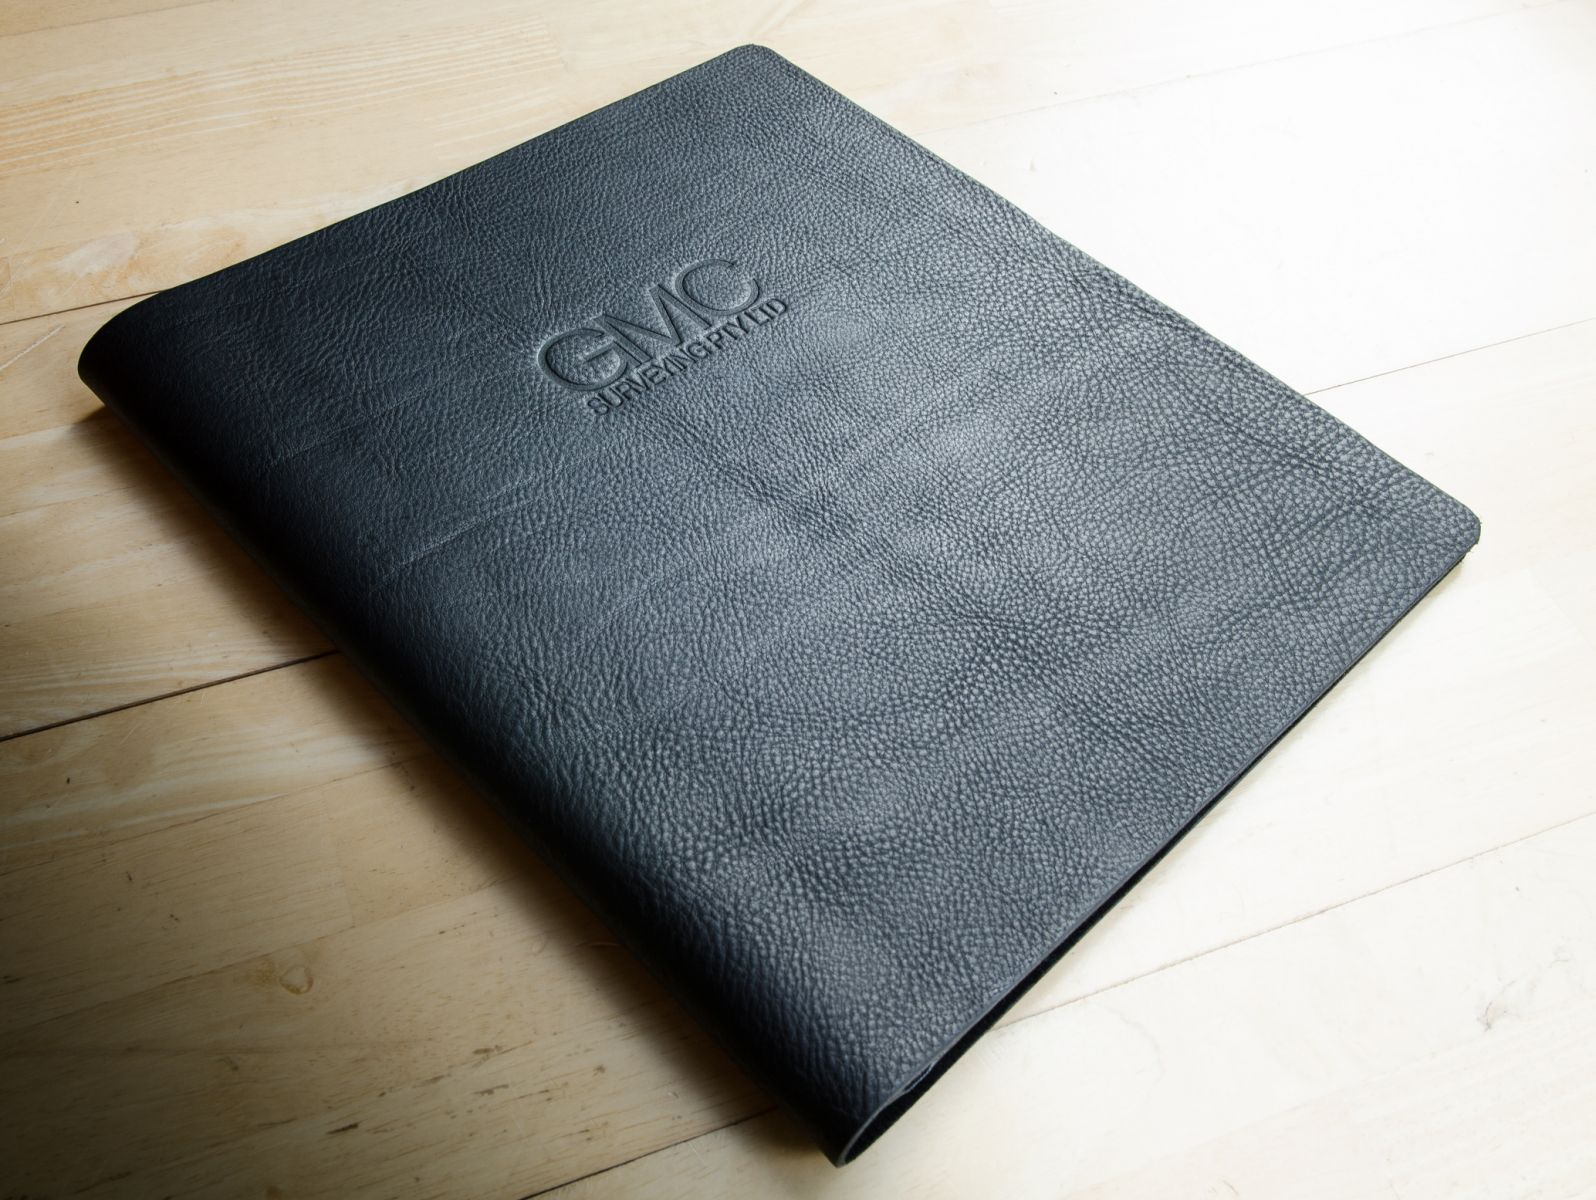 Leather portfolio cases business portfolios folders embossed with - Classic And Fresh Design Presentation Portfolio With Blind Debossed Logo Ivory Buckram Outer Cover And Aqua Marine In Cover And Spine Portfolio H